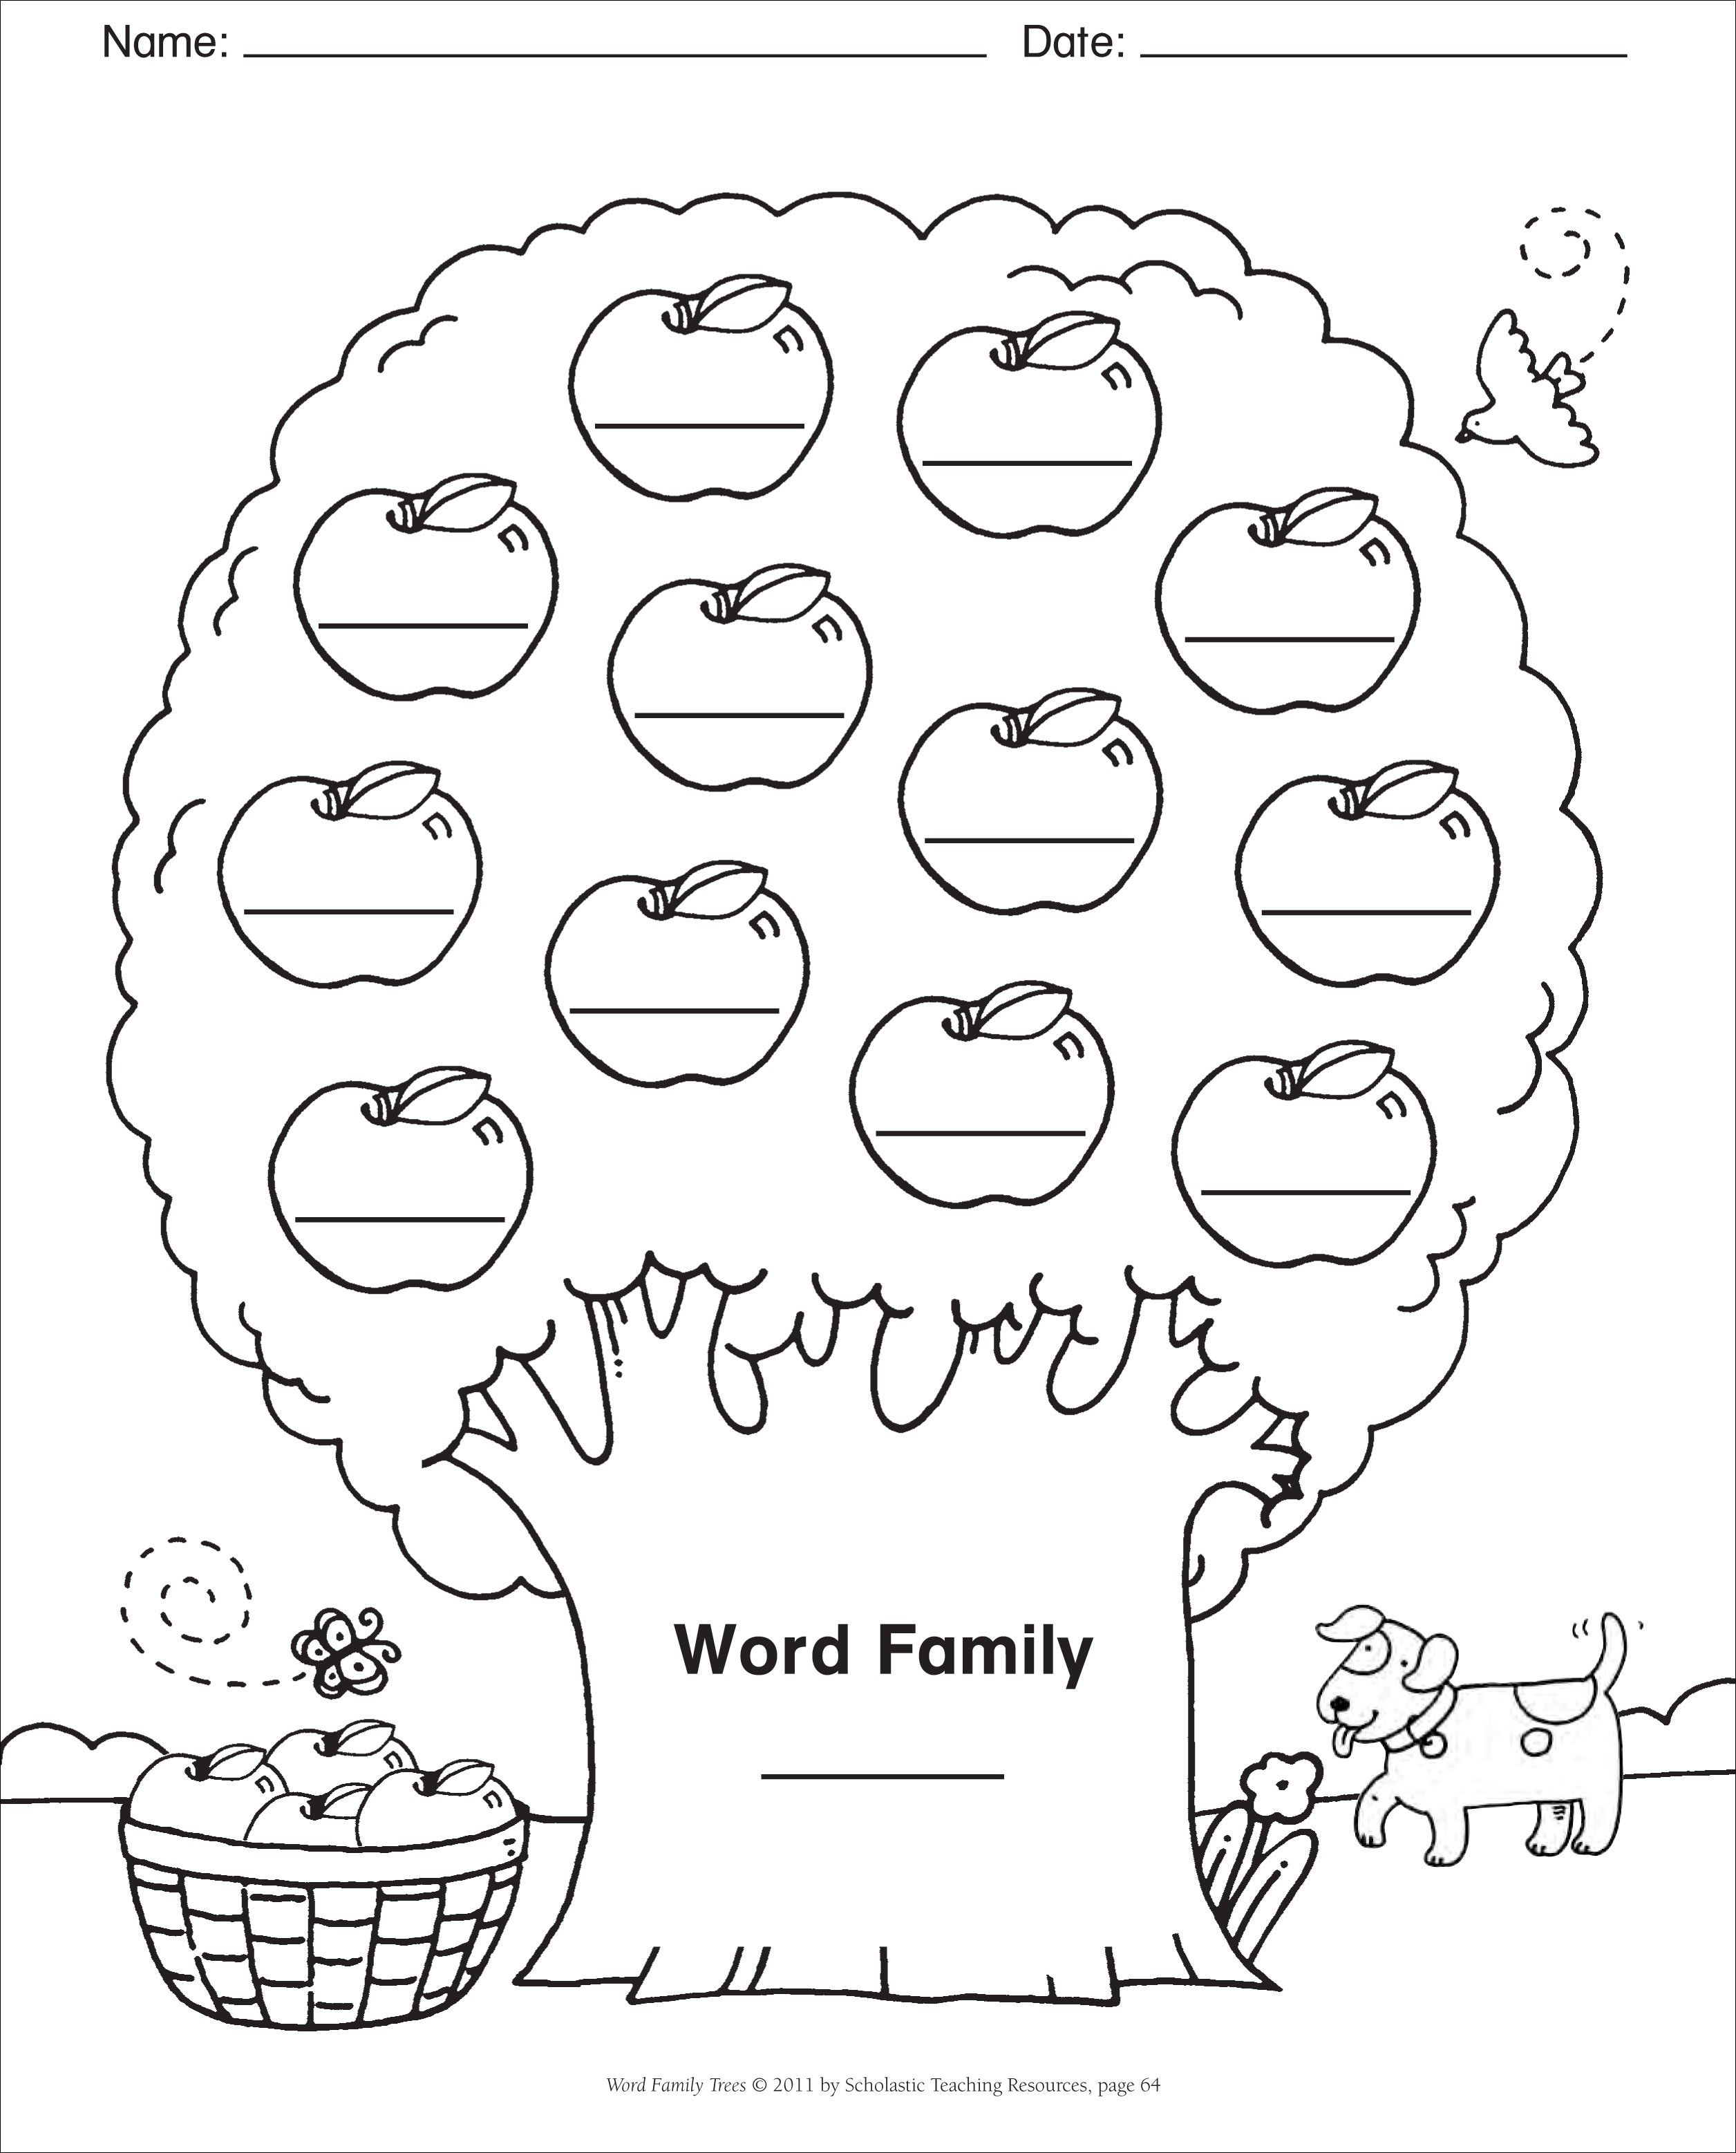 Worksheets Blank Family Tree Worksheet word family template blank tree spelling writing subject